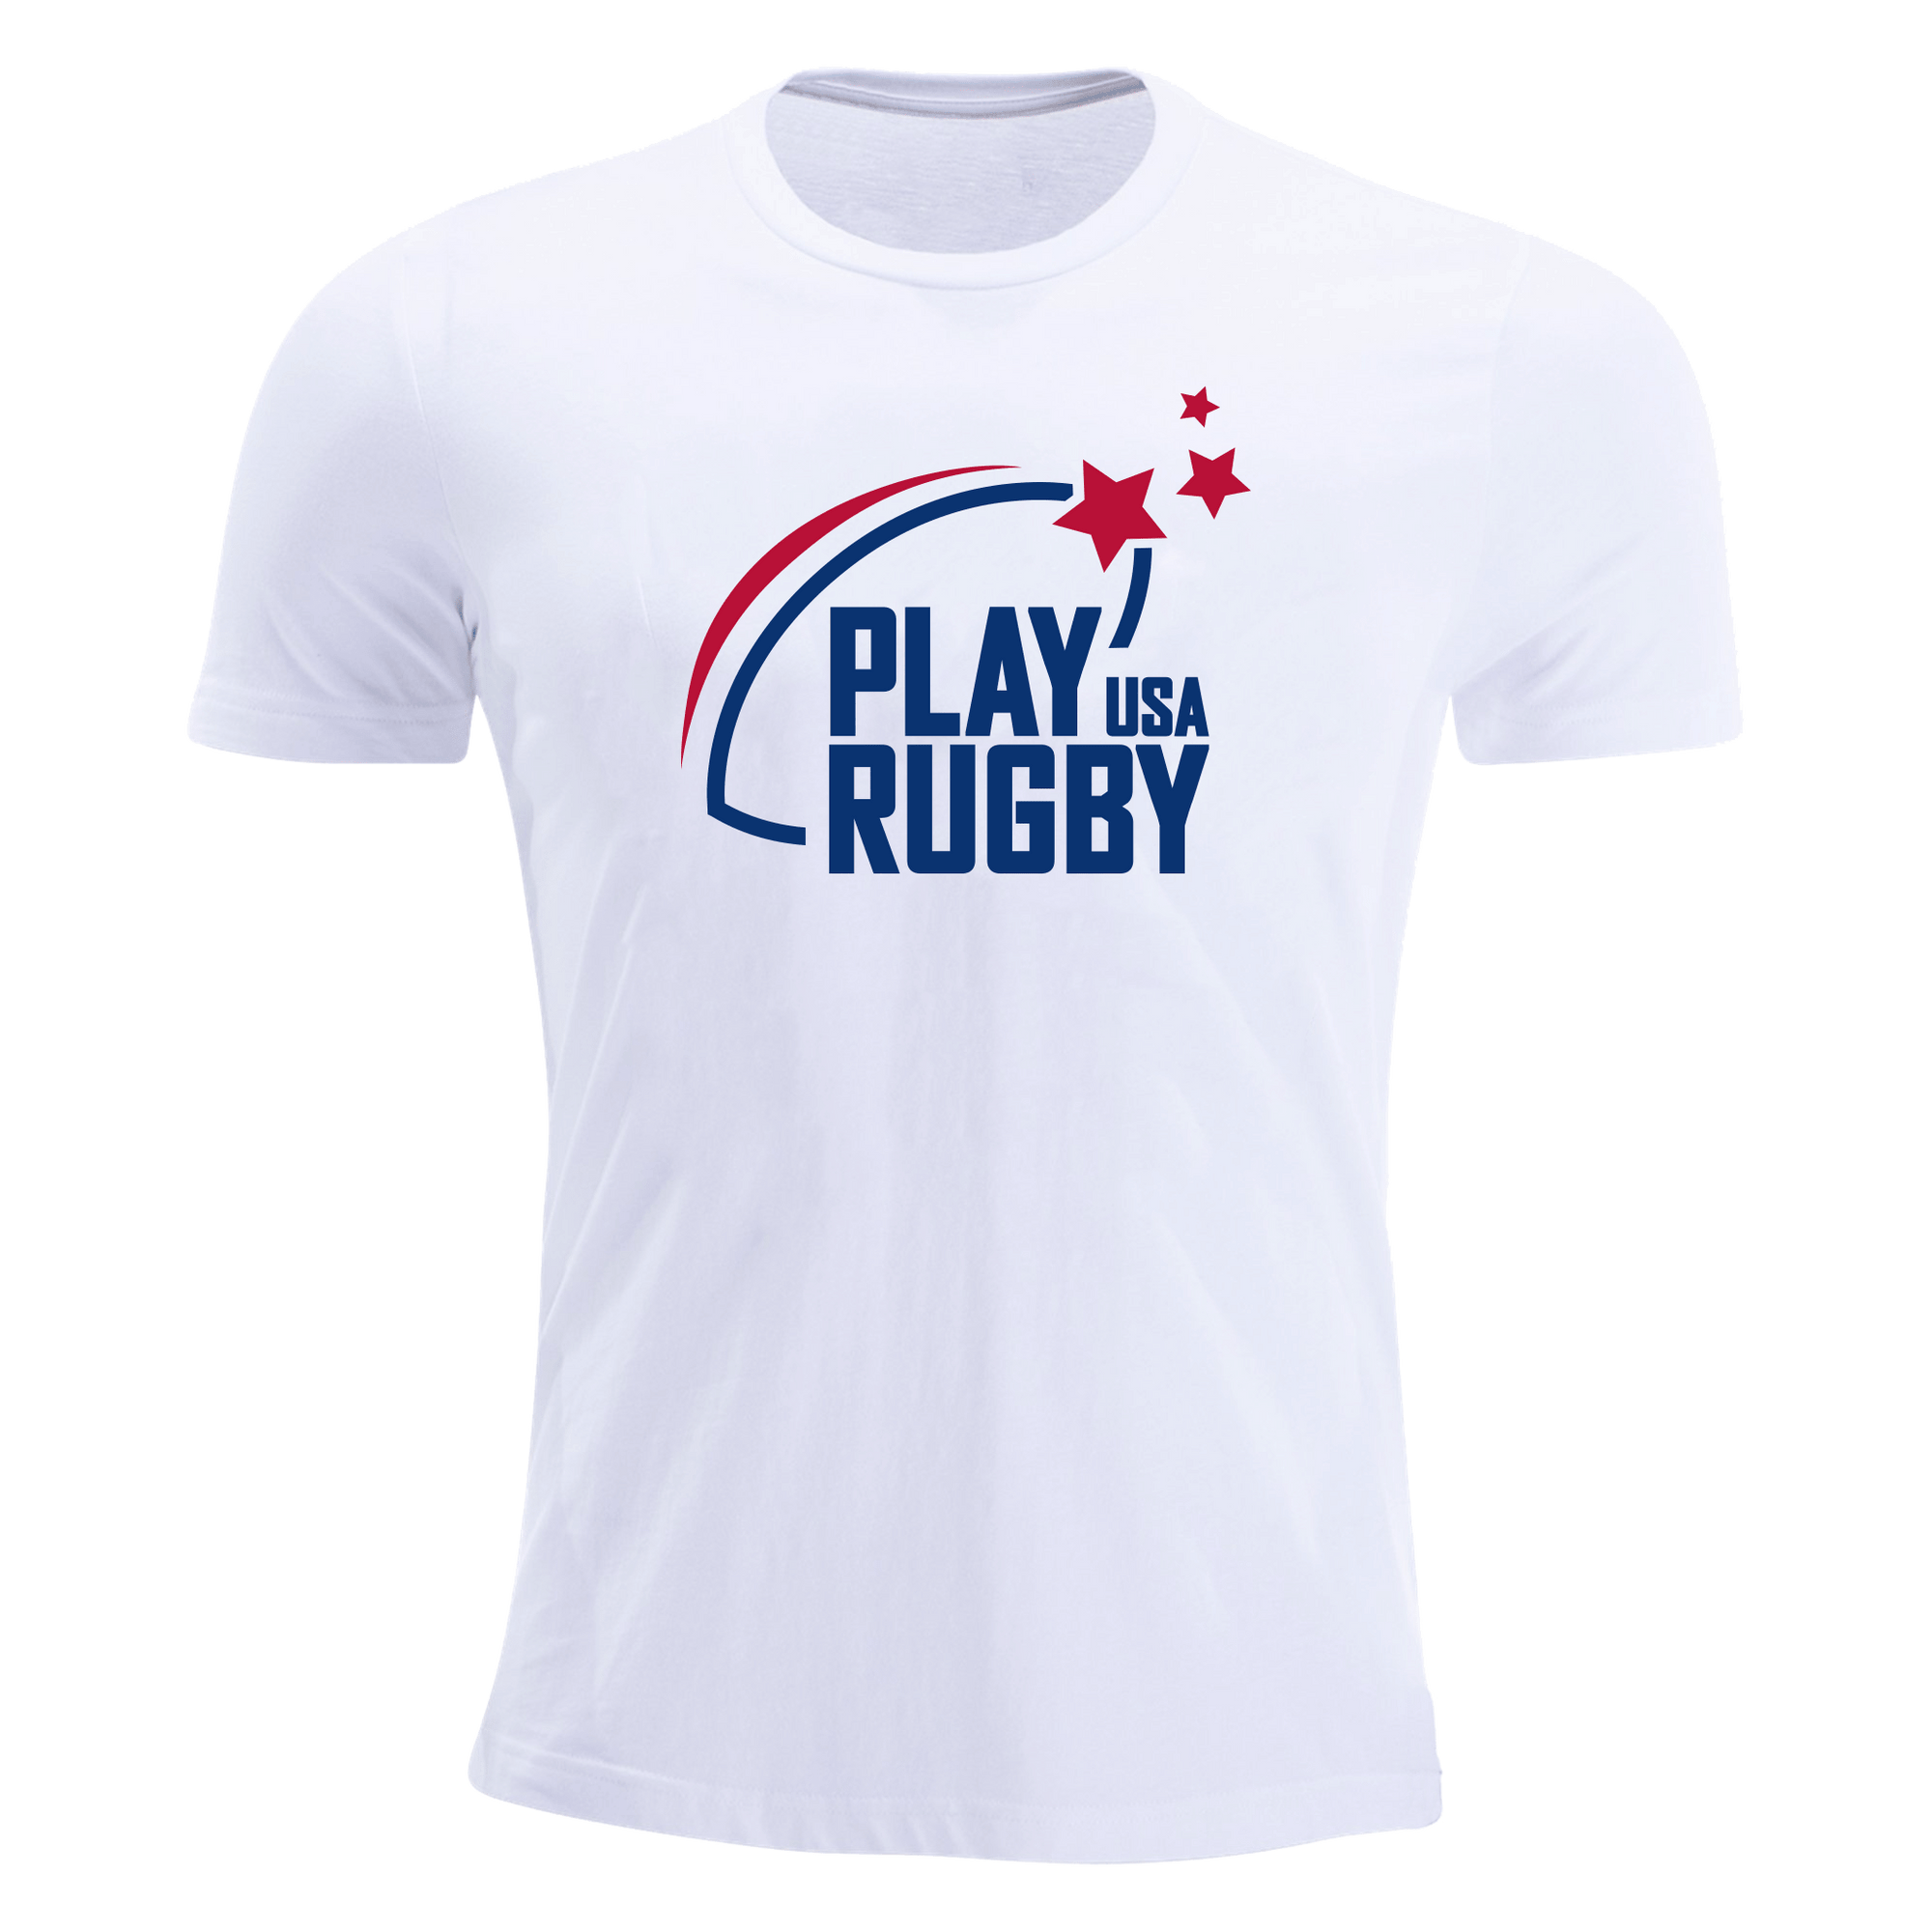 Play Rugby USA Premiership T-Shirt White